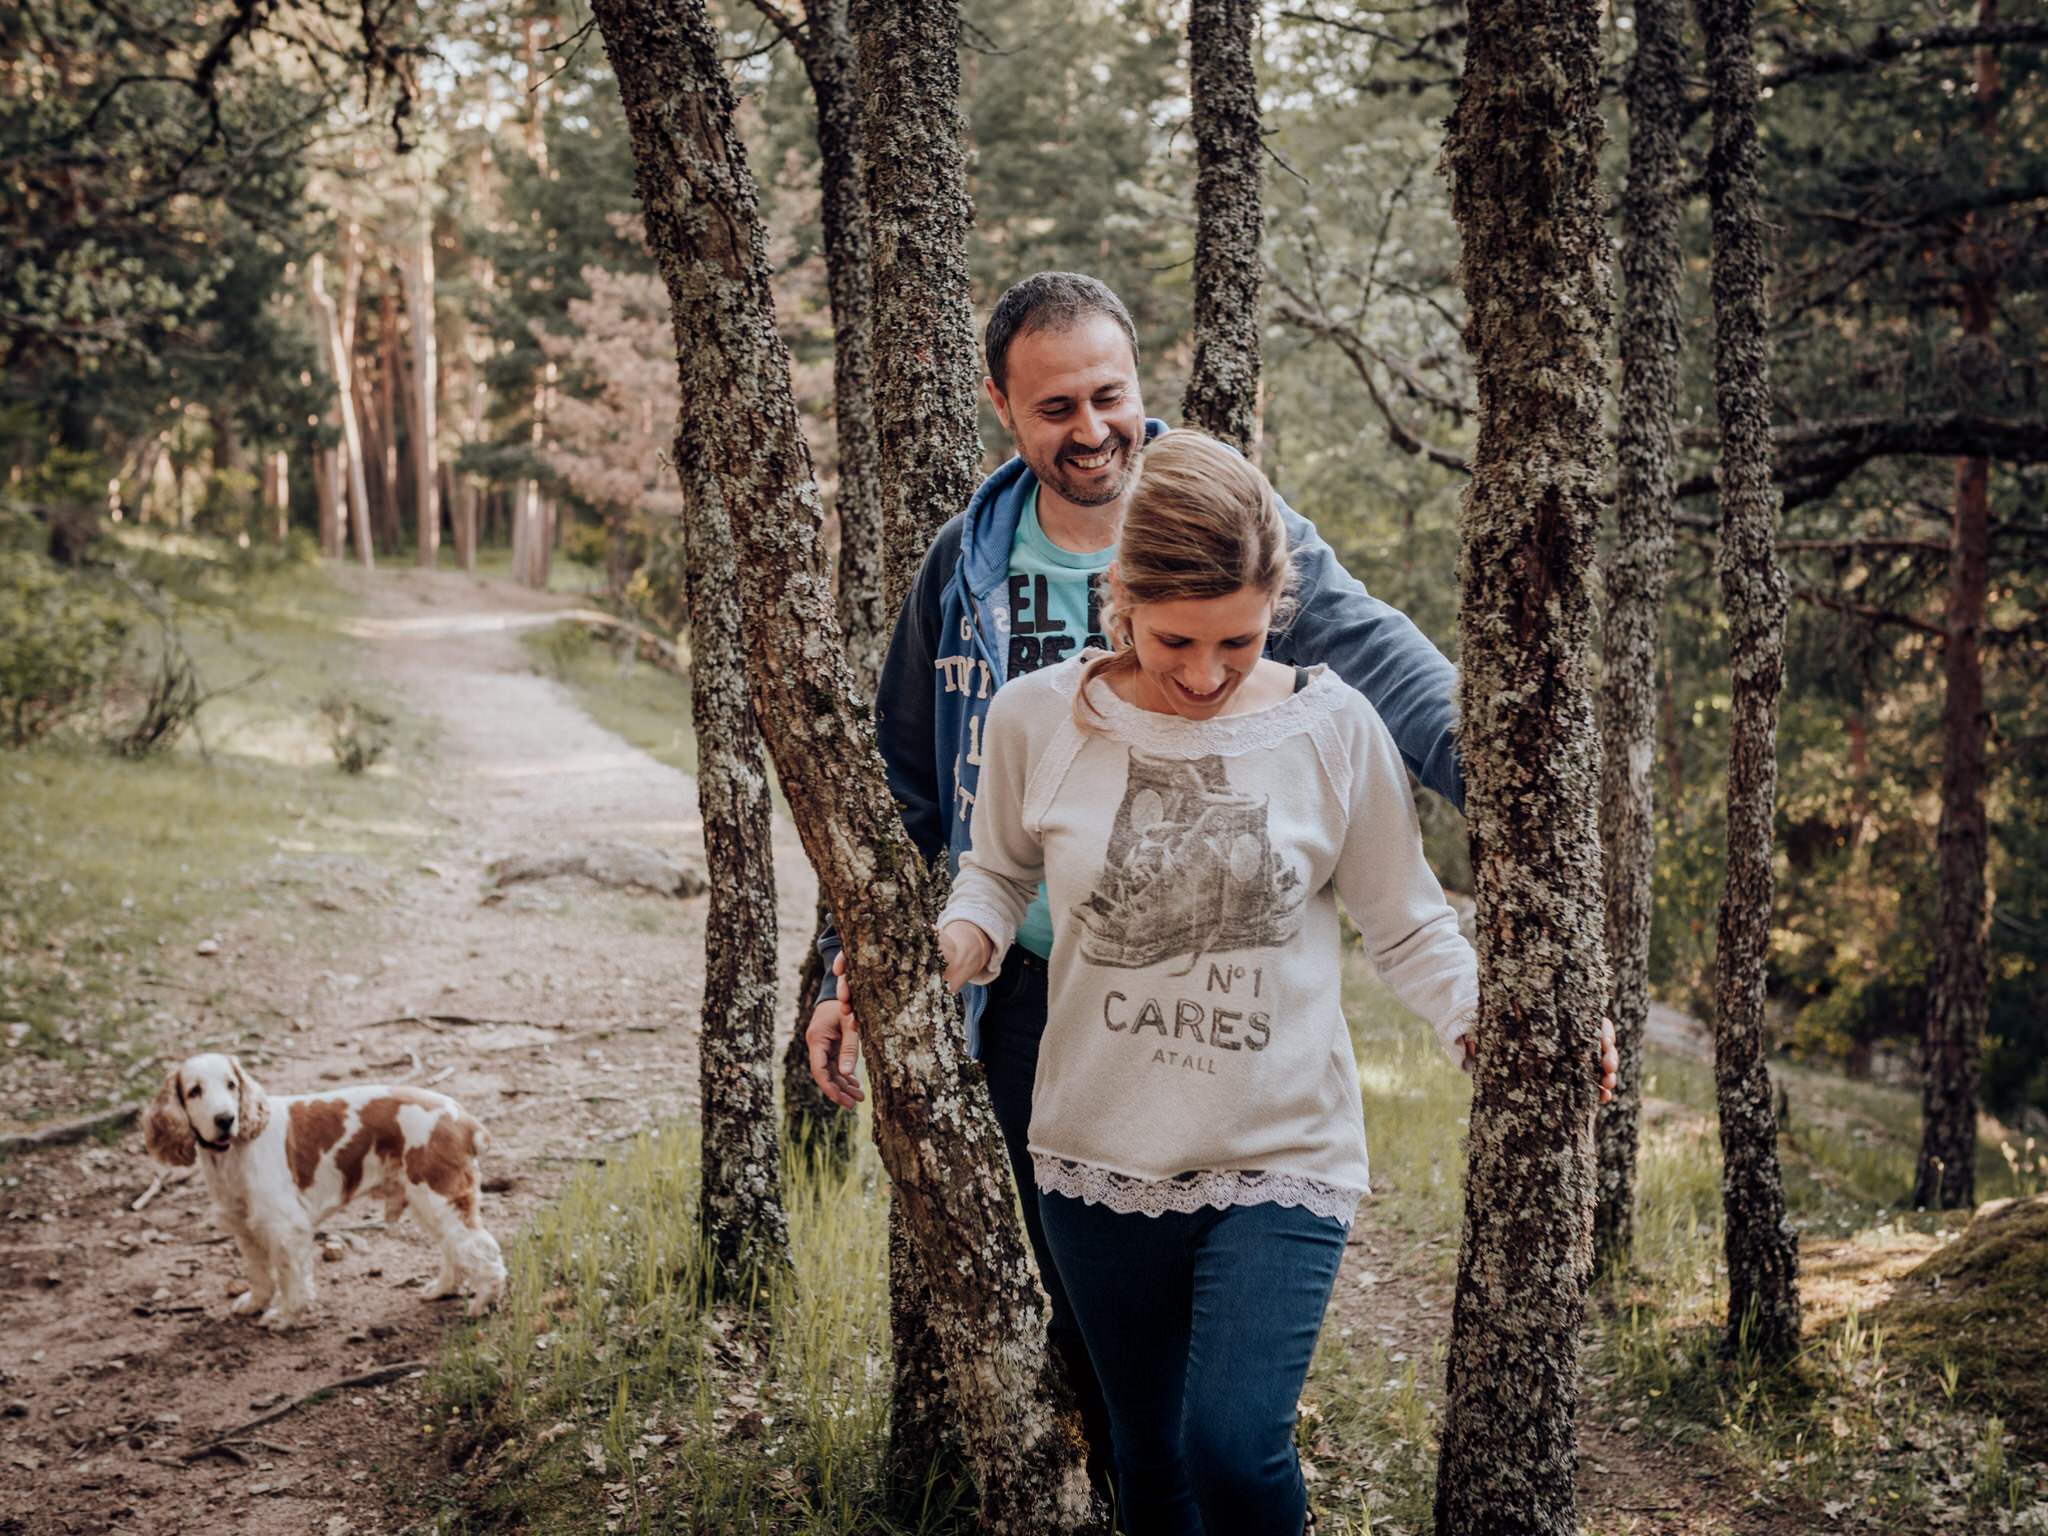 preboda-pet-friendly-en-el-pinar-de-valsain